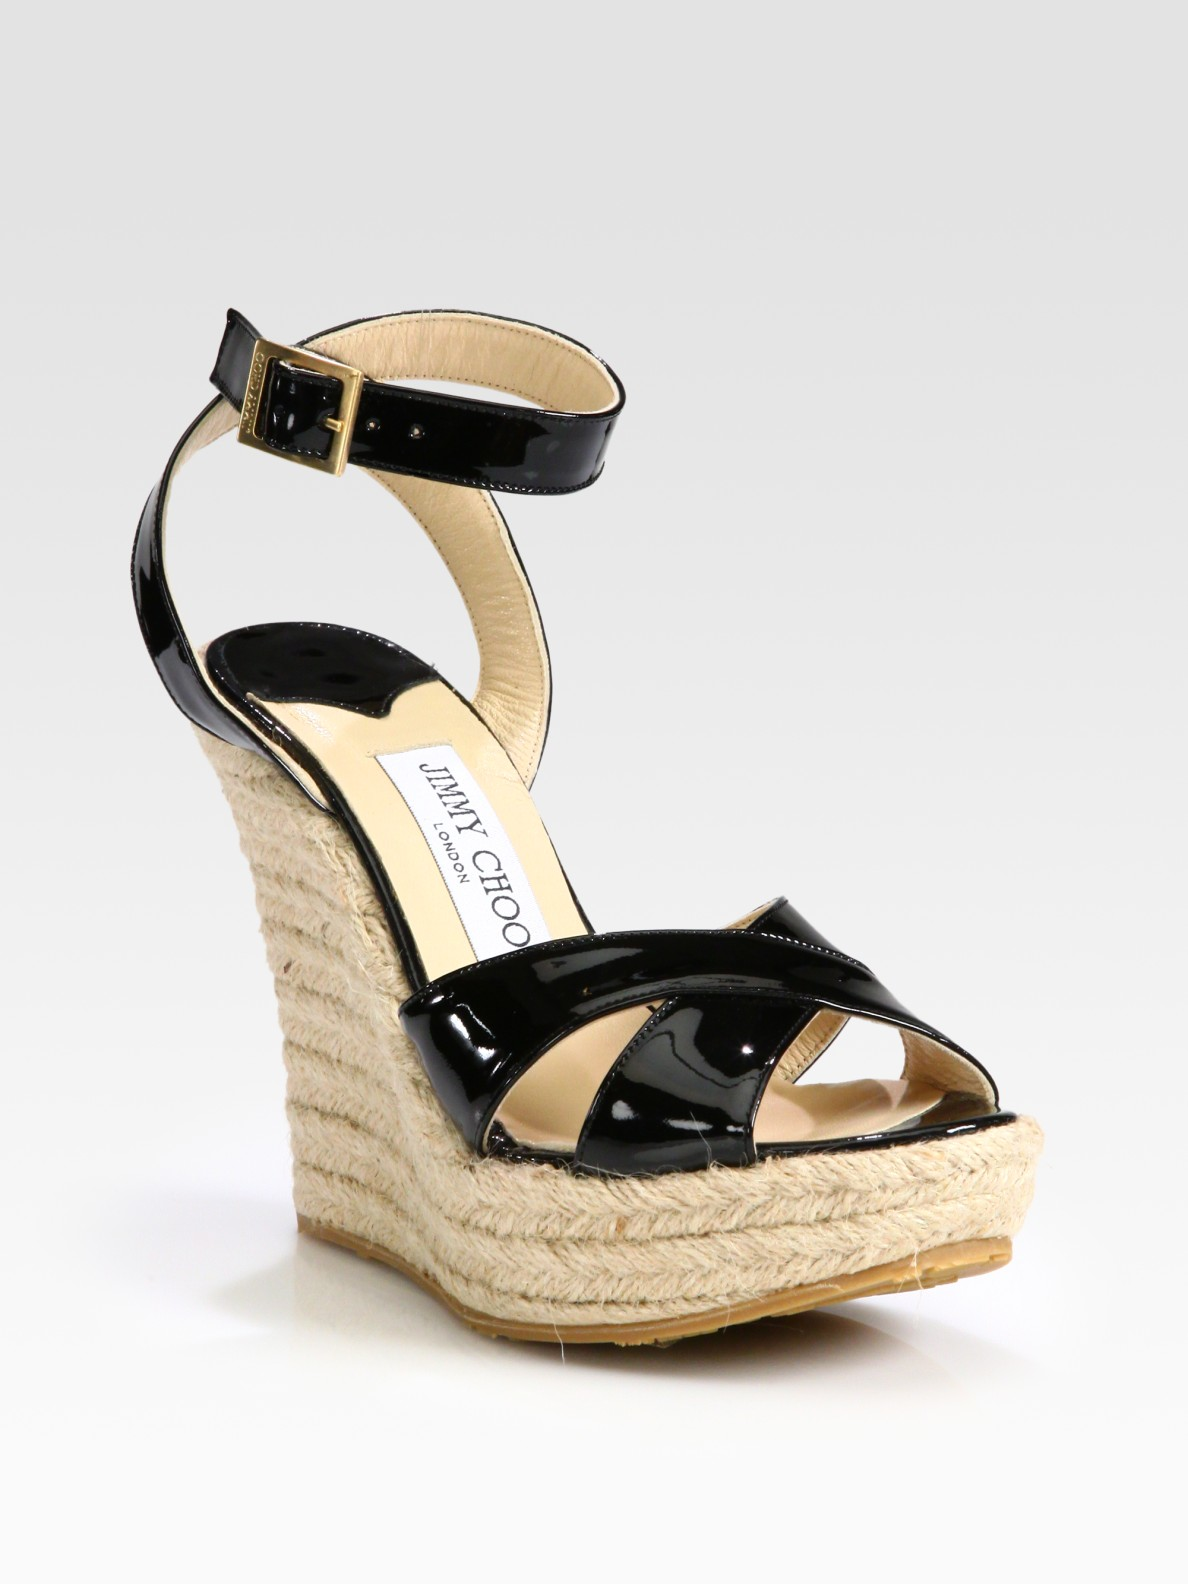 Jimmy Choo Patent Leather Wedged Espadrilles